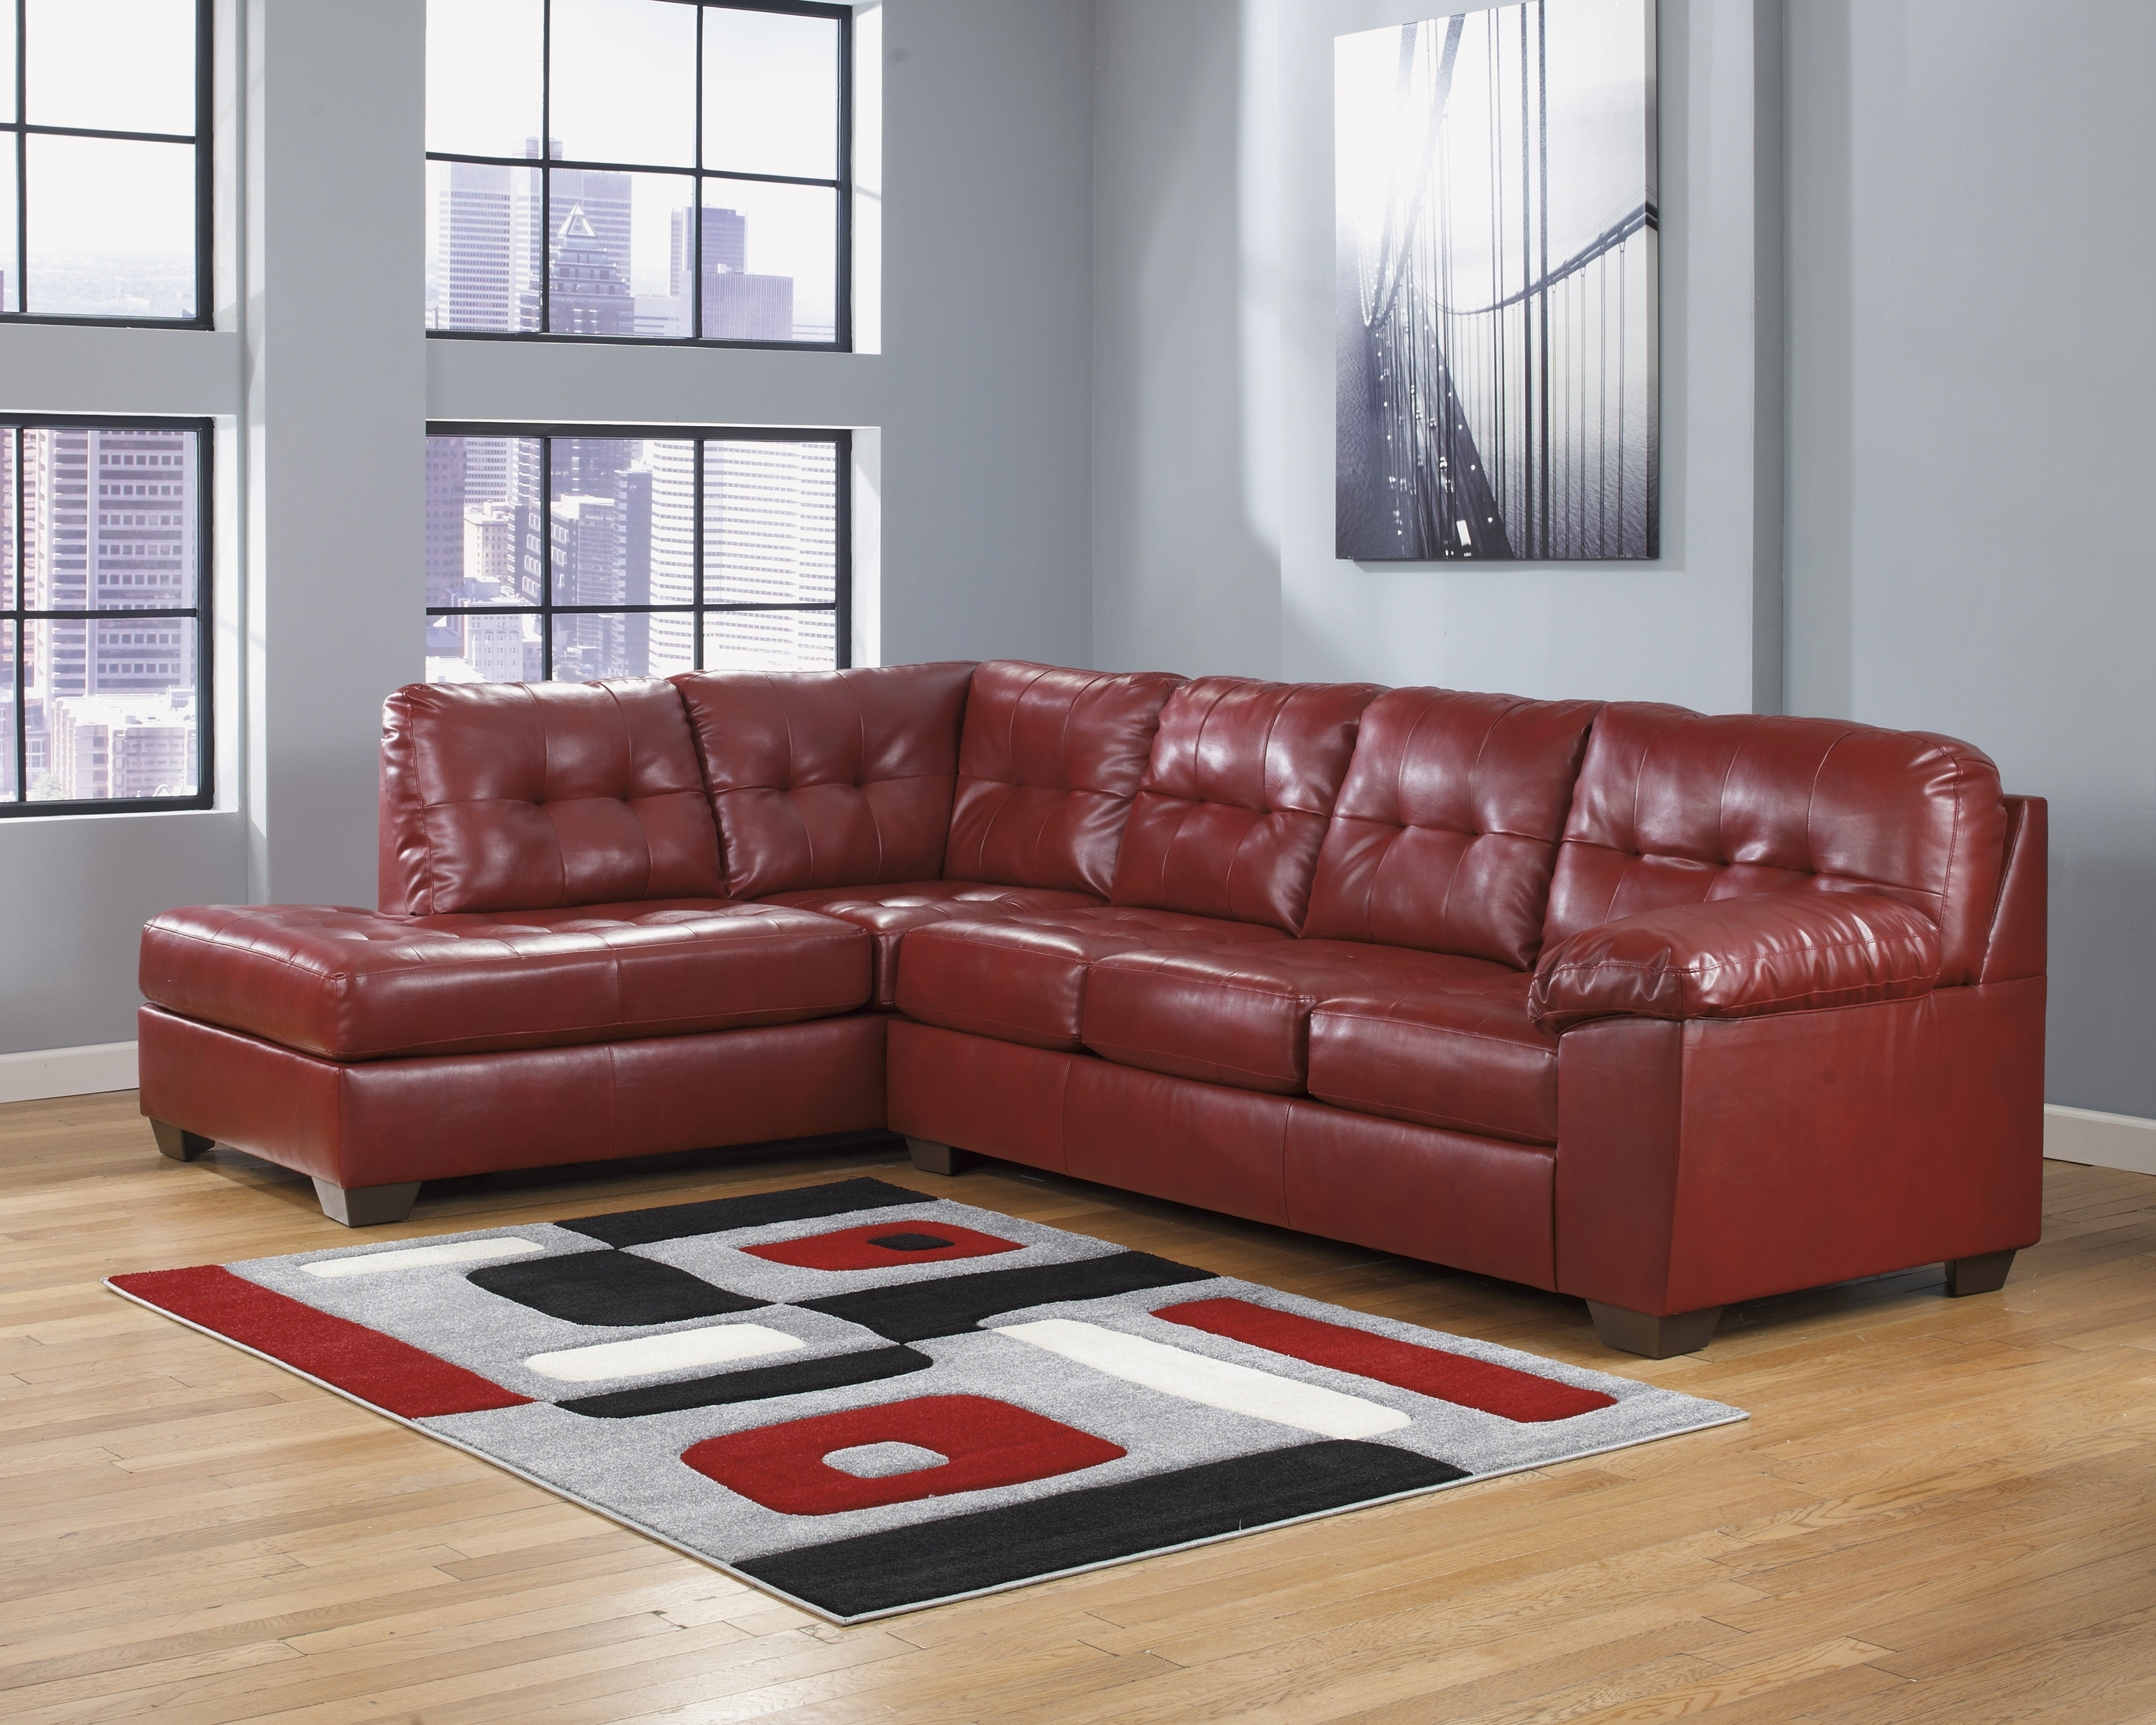 Unique Red Microfiber Couch And Loveseat 2018 – Couches And Sofas Ideas inside Red Leather Couches and Loveseats (Image 15 of 15)